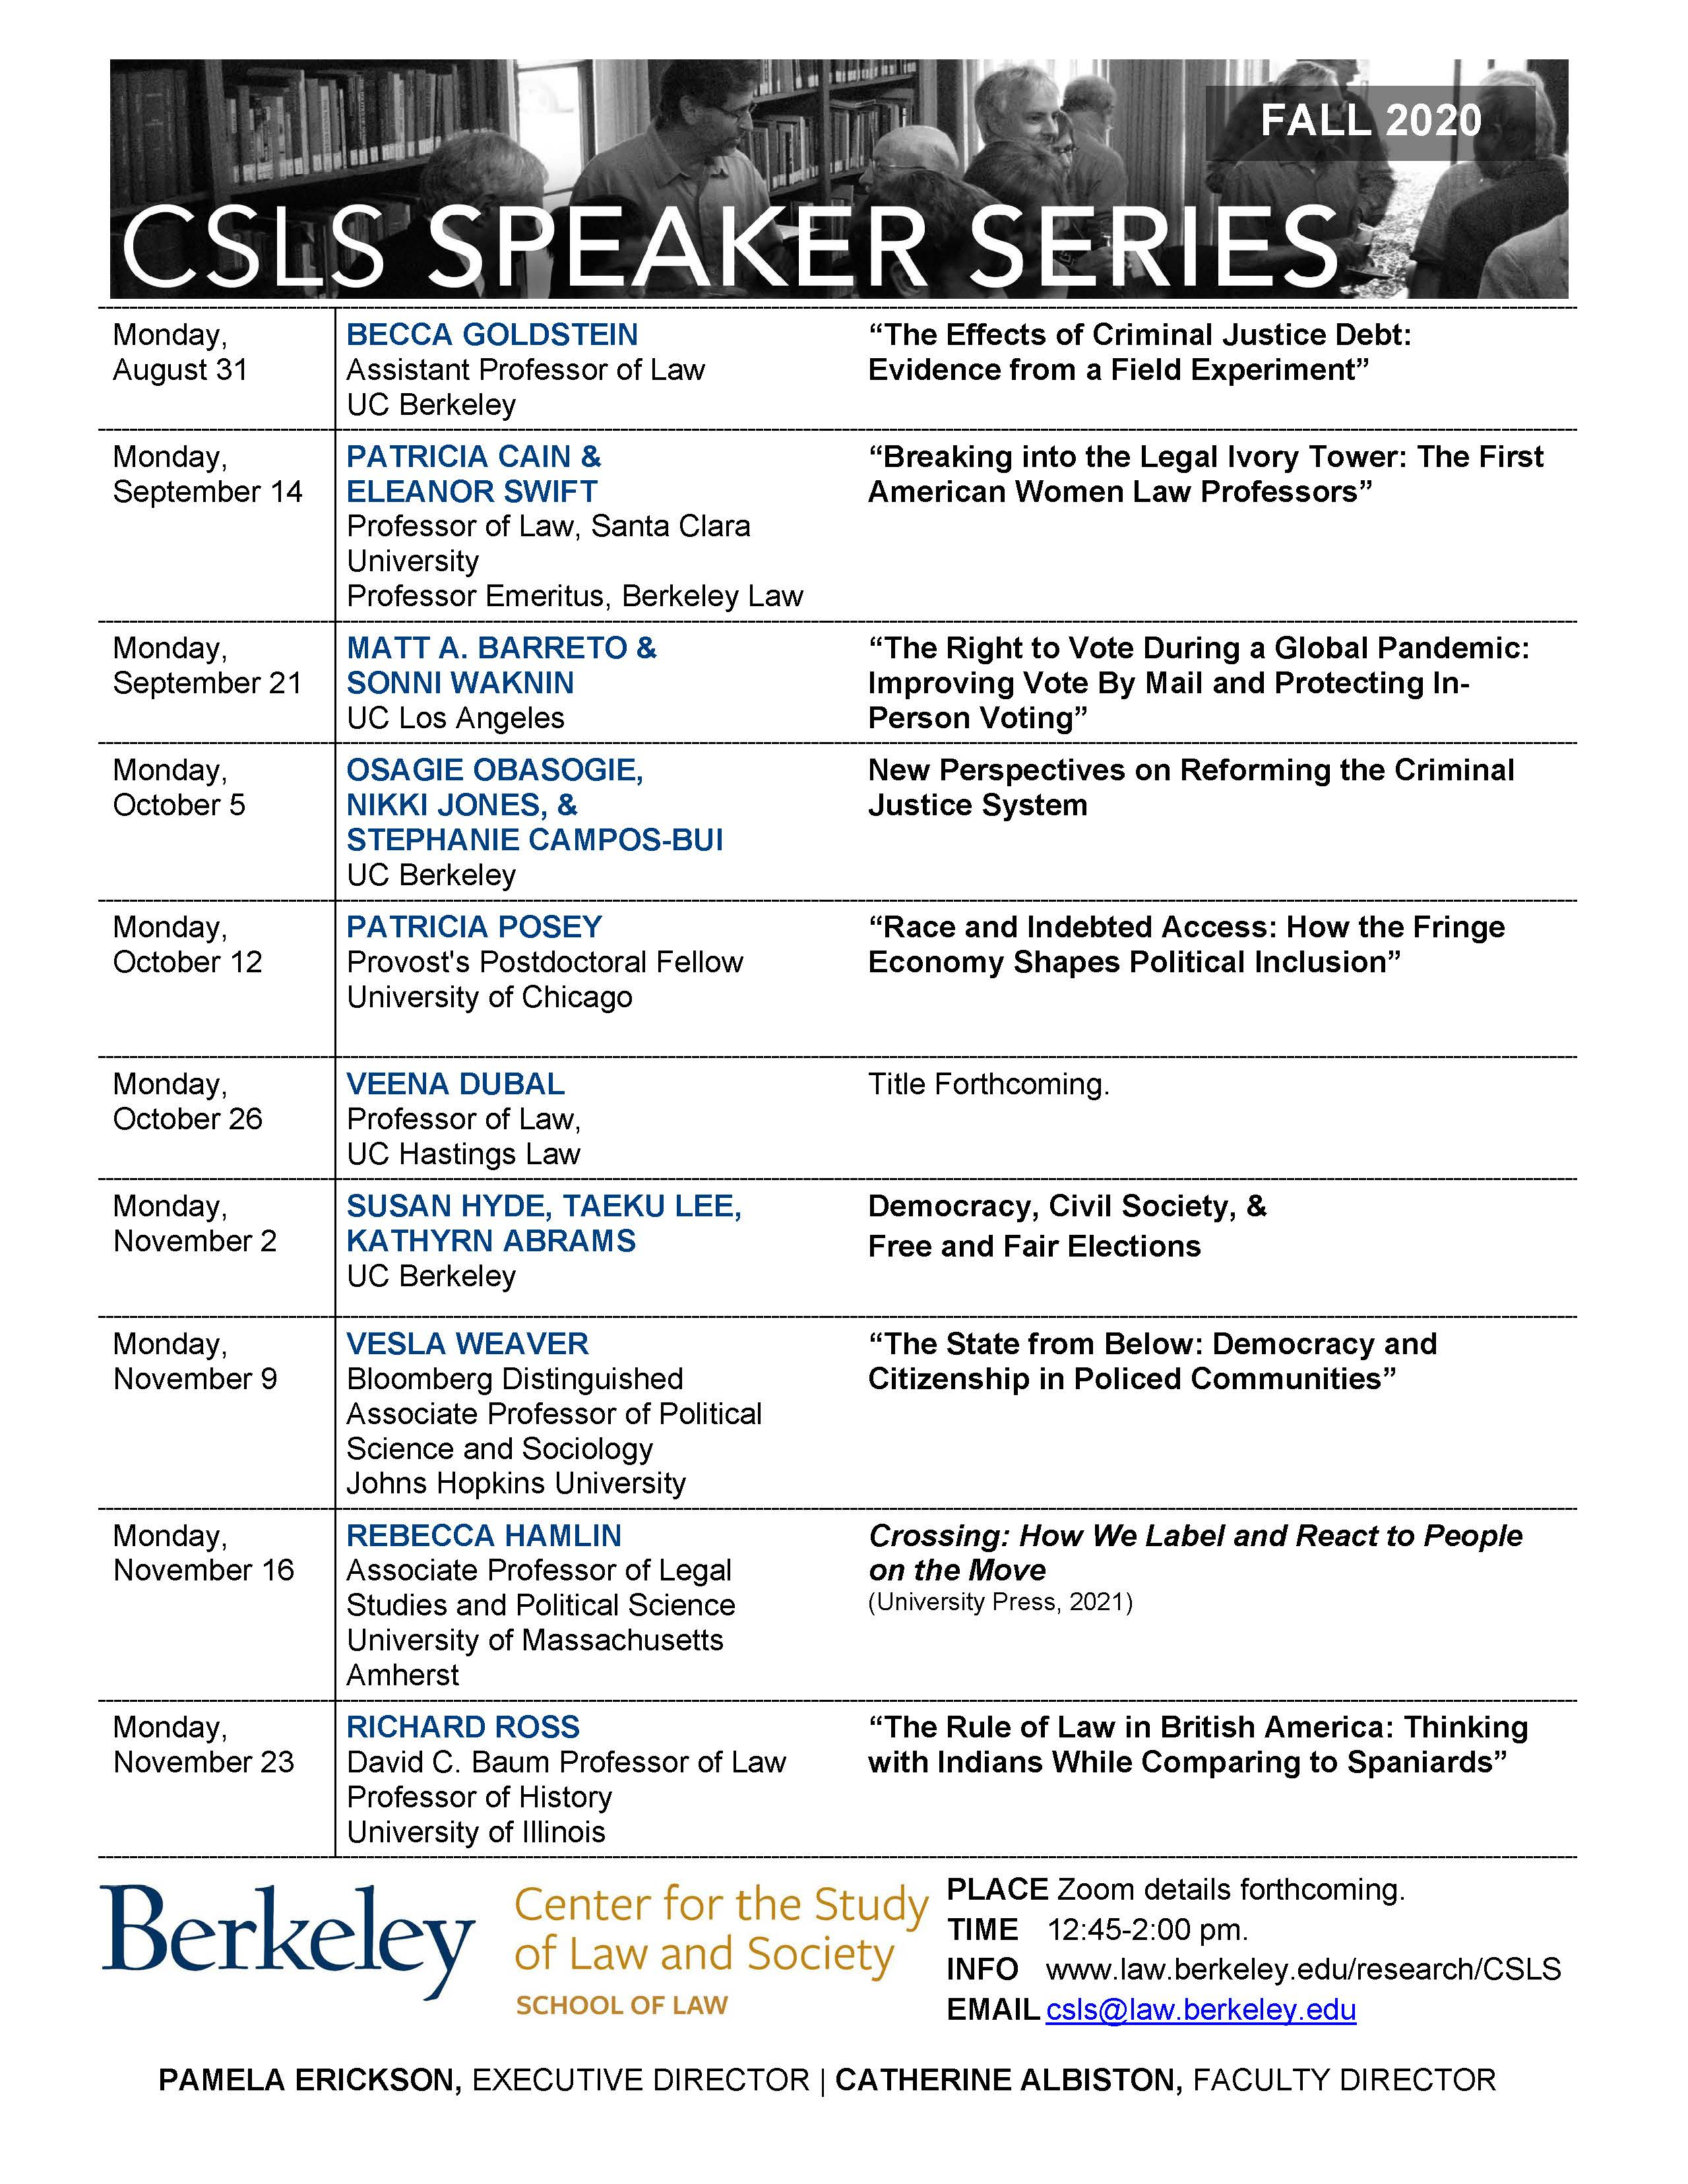 CSLS Speaker Series | Center for the Study of Law and Society